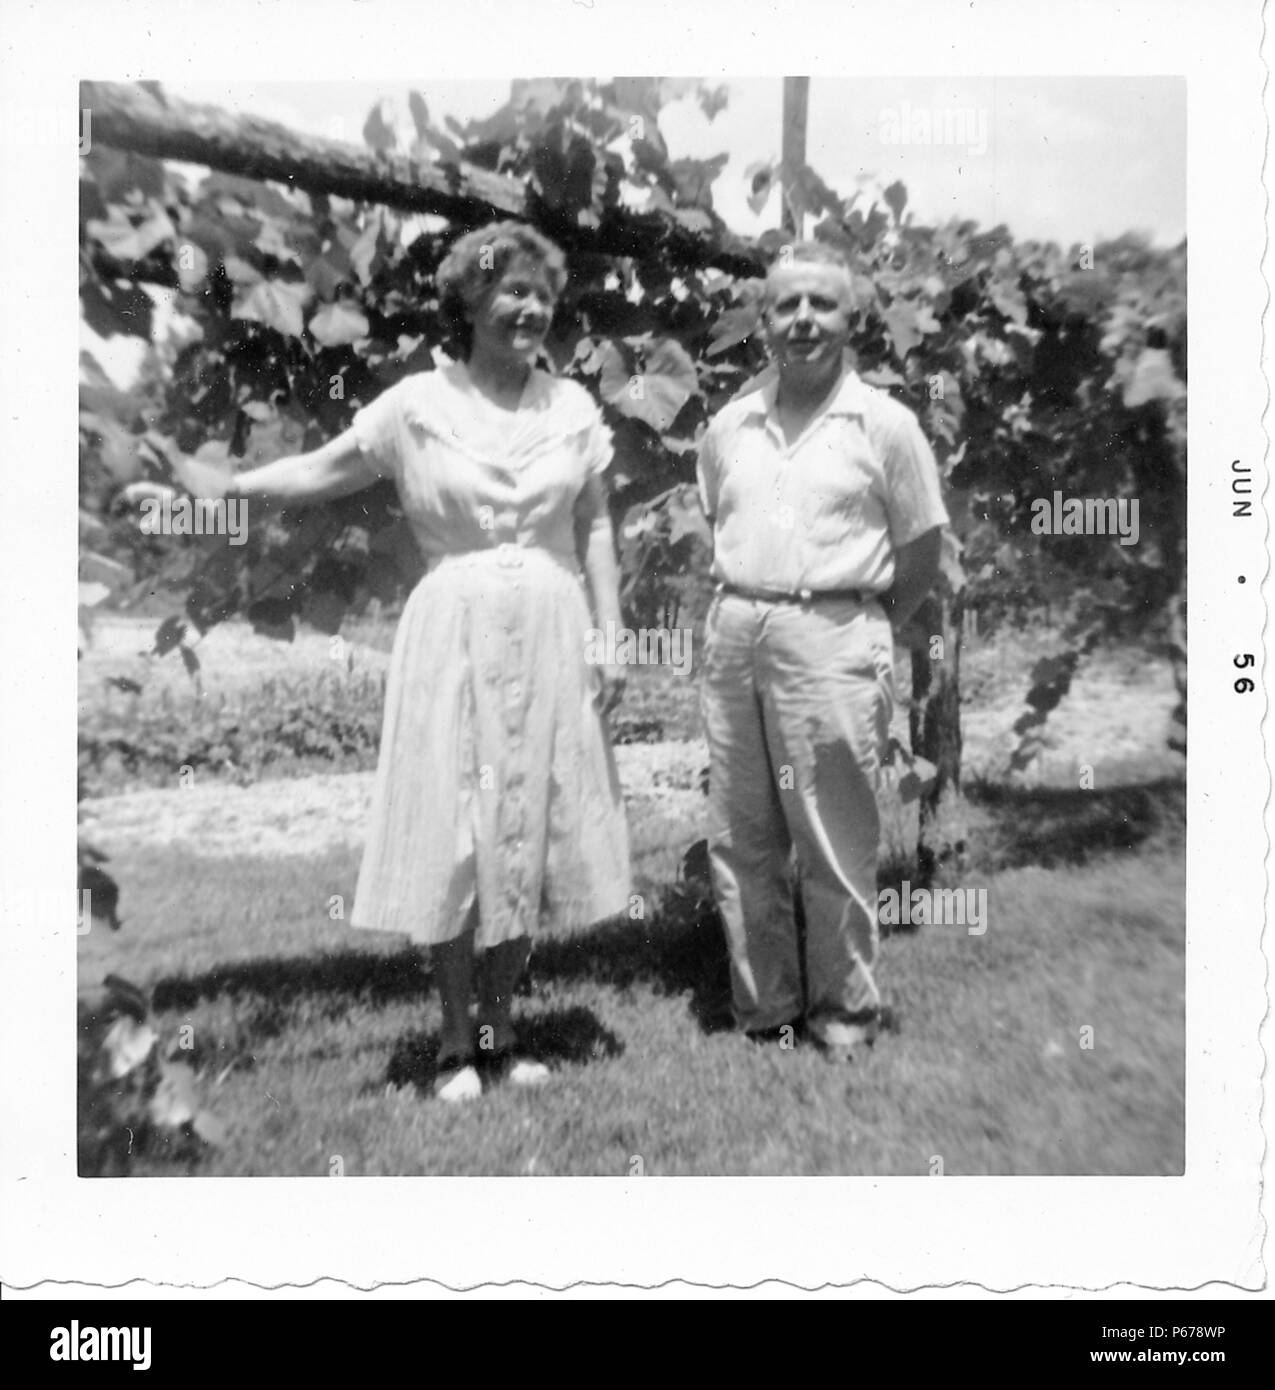 Black and white photograph, showing an older couple, in full length, posing together outdoors, the man, faces the camera, and wears a light colored shirt and trousers, the short-haired woman, wears a light colored, tea-length dress and smiles at something off-camera, her arm rests on a vine-covered fence behind her, likely photographed in Ohio, June, 1956. () Stock Photo